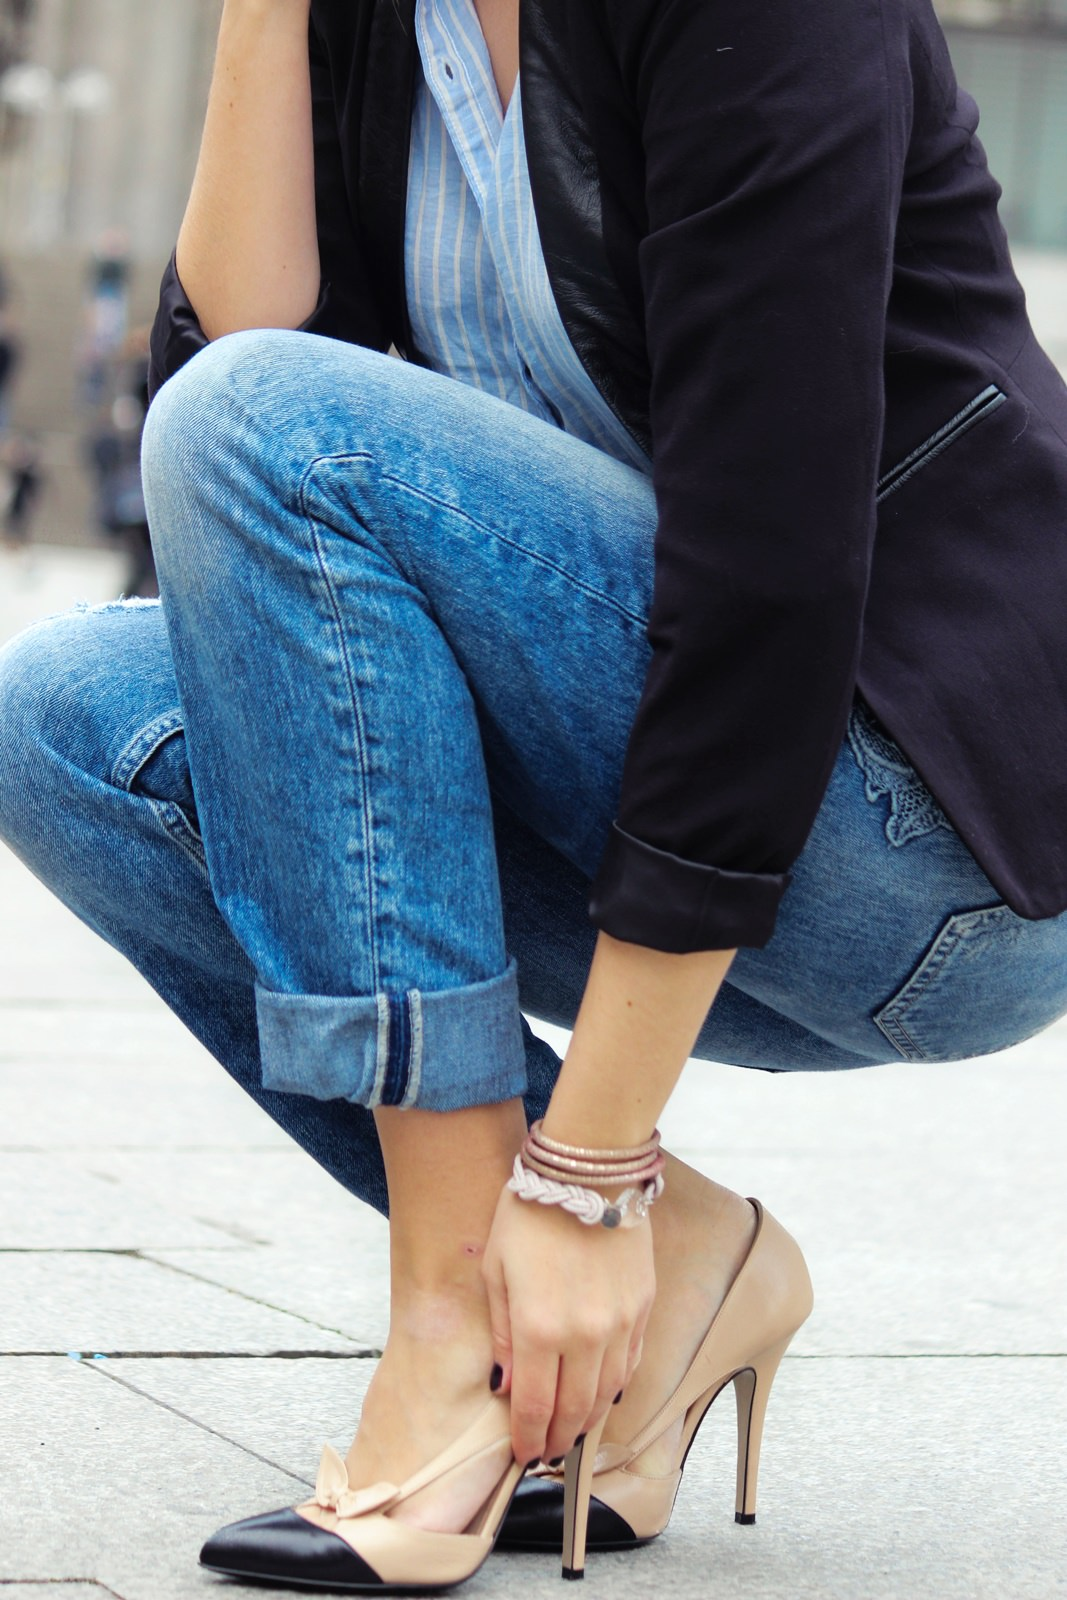 Des Belles Choses Outfit - 10 things why it's great to be a woman Boyfriend Style with pumps 7